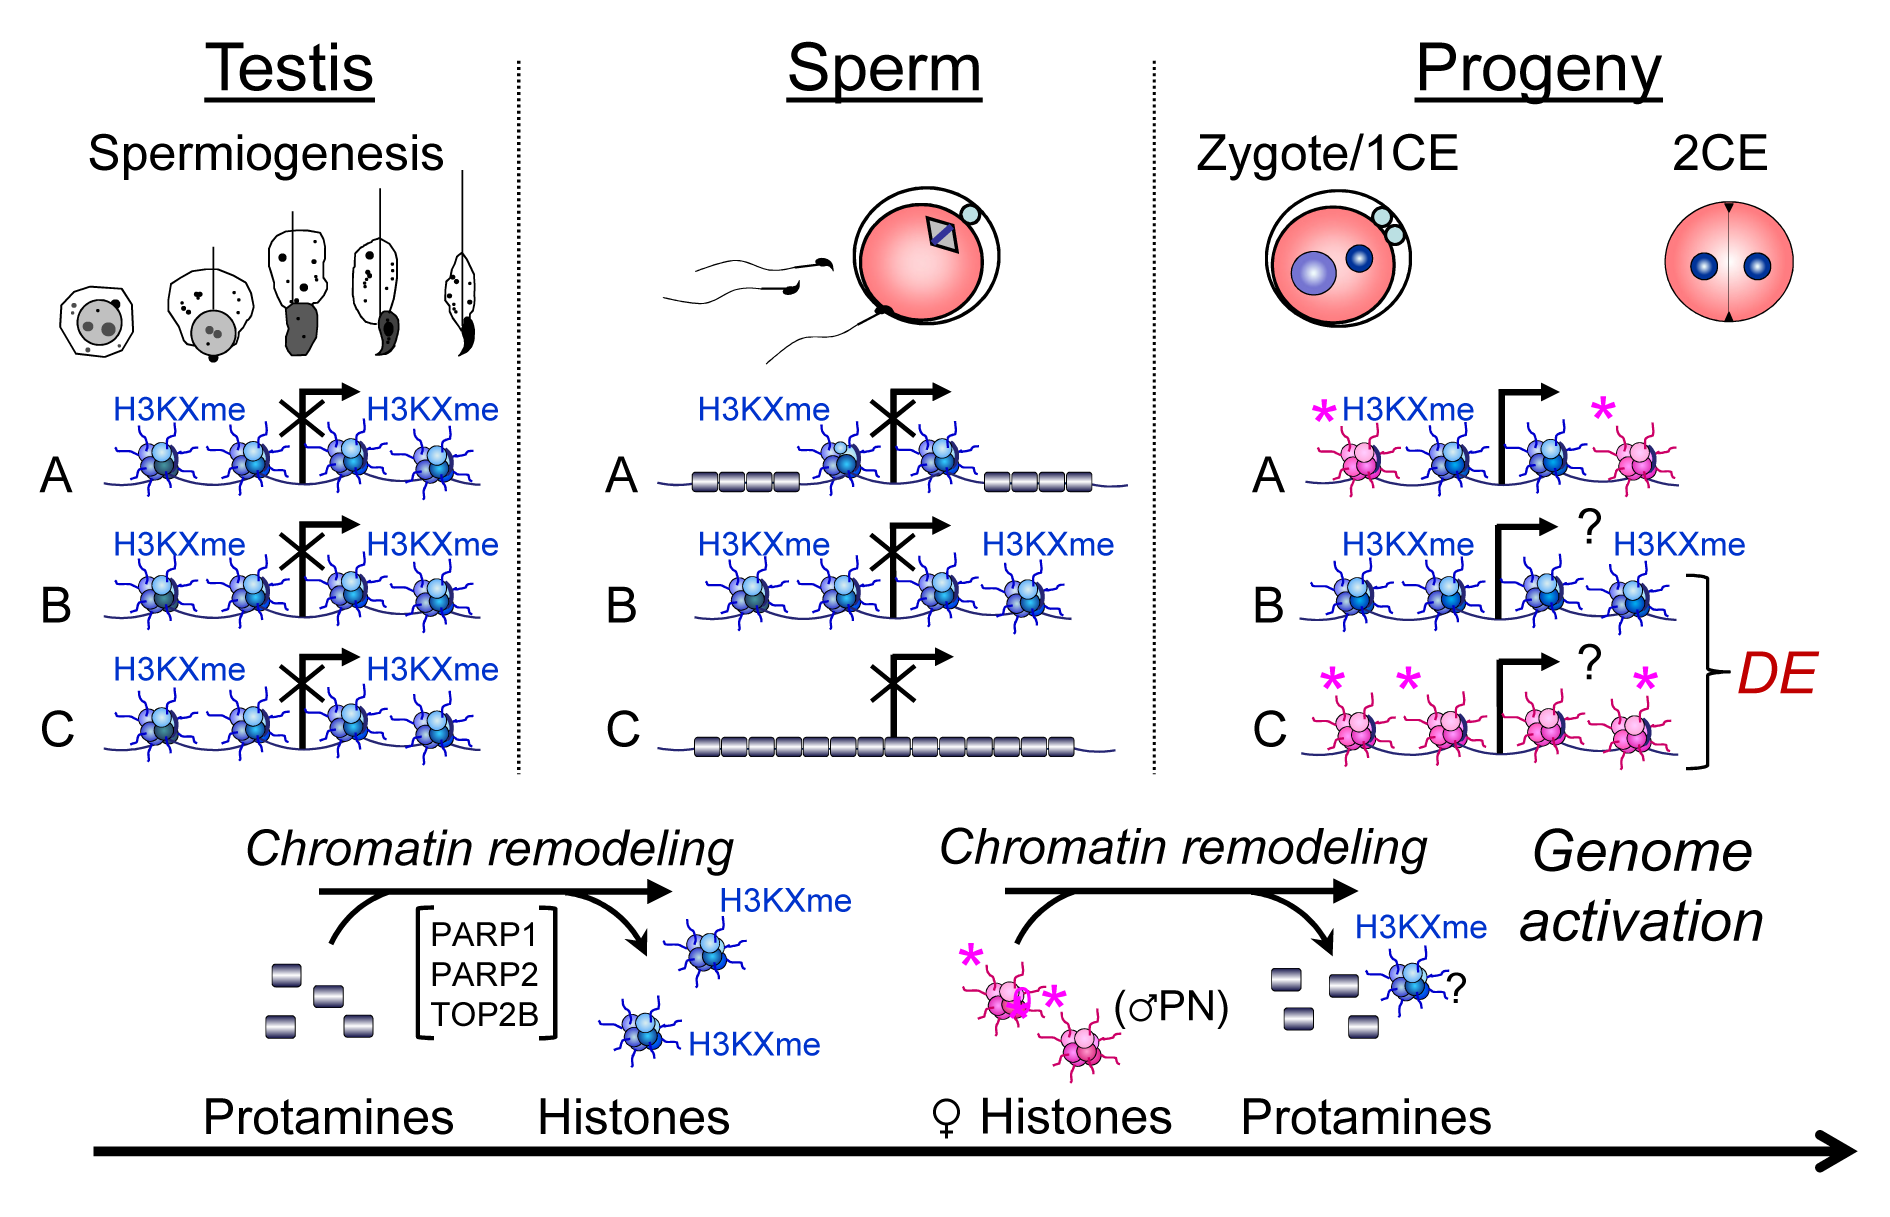 Chromatin remodeling events in spermiogenesis affect sperm histone-dependent regulation of gene expression during embryonic genome activation (working model).